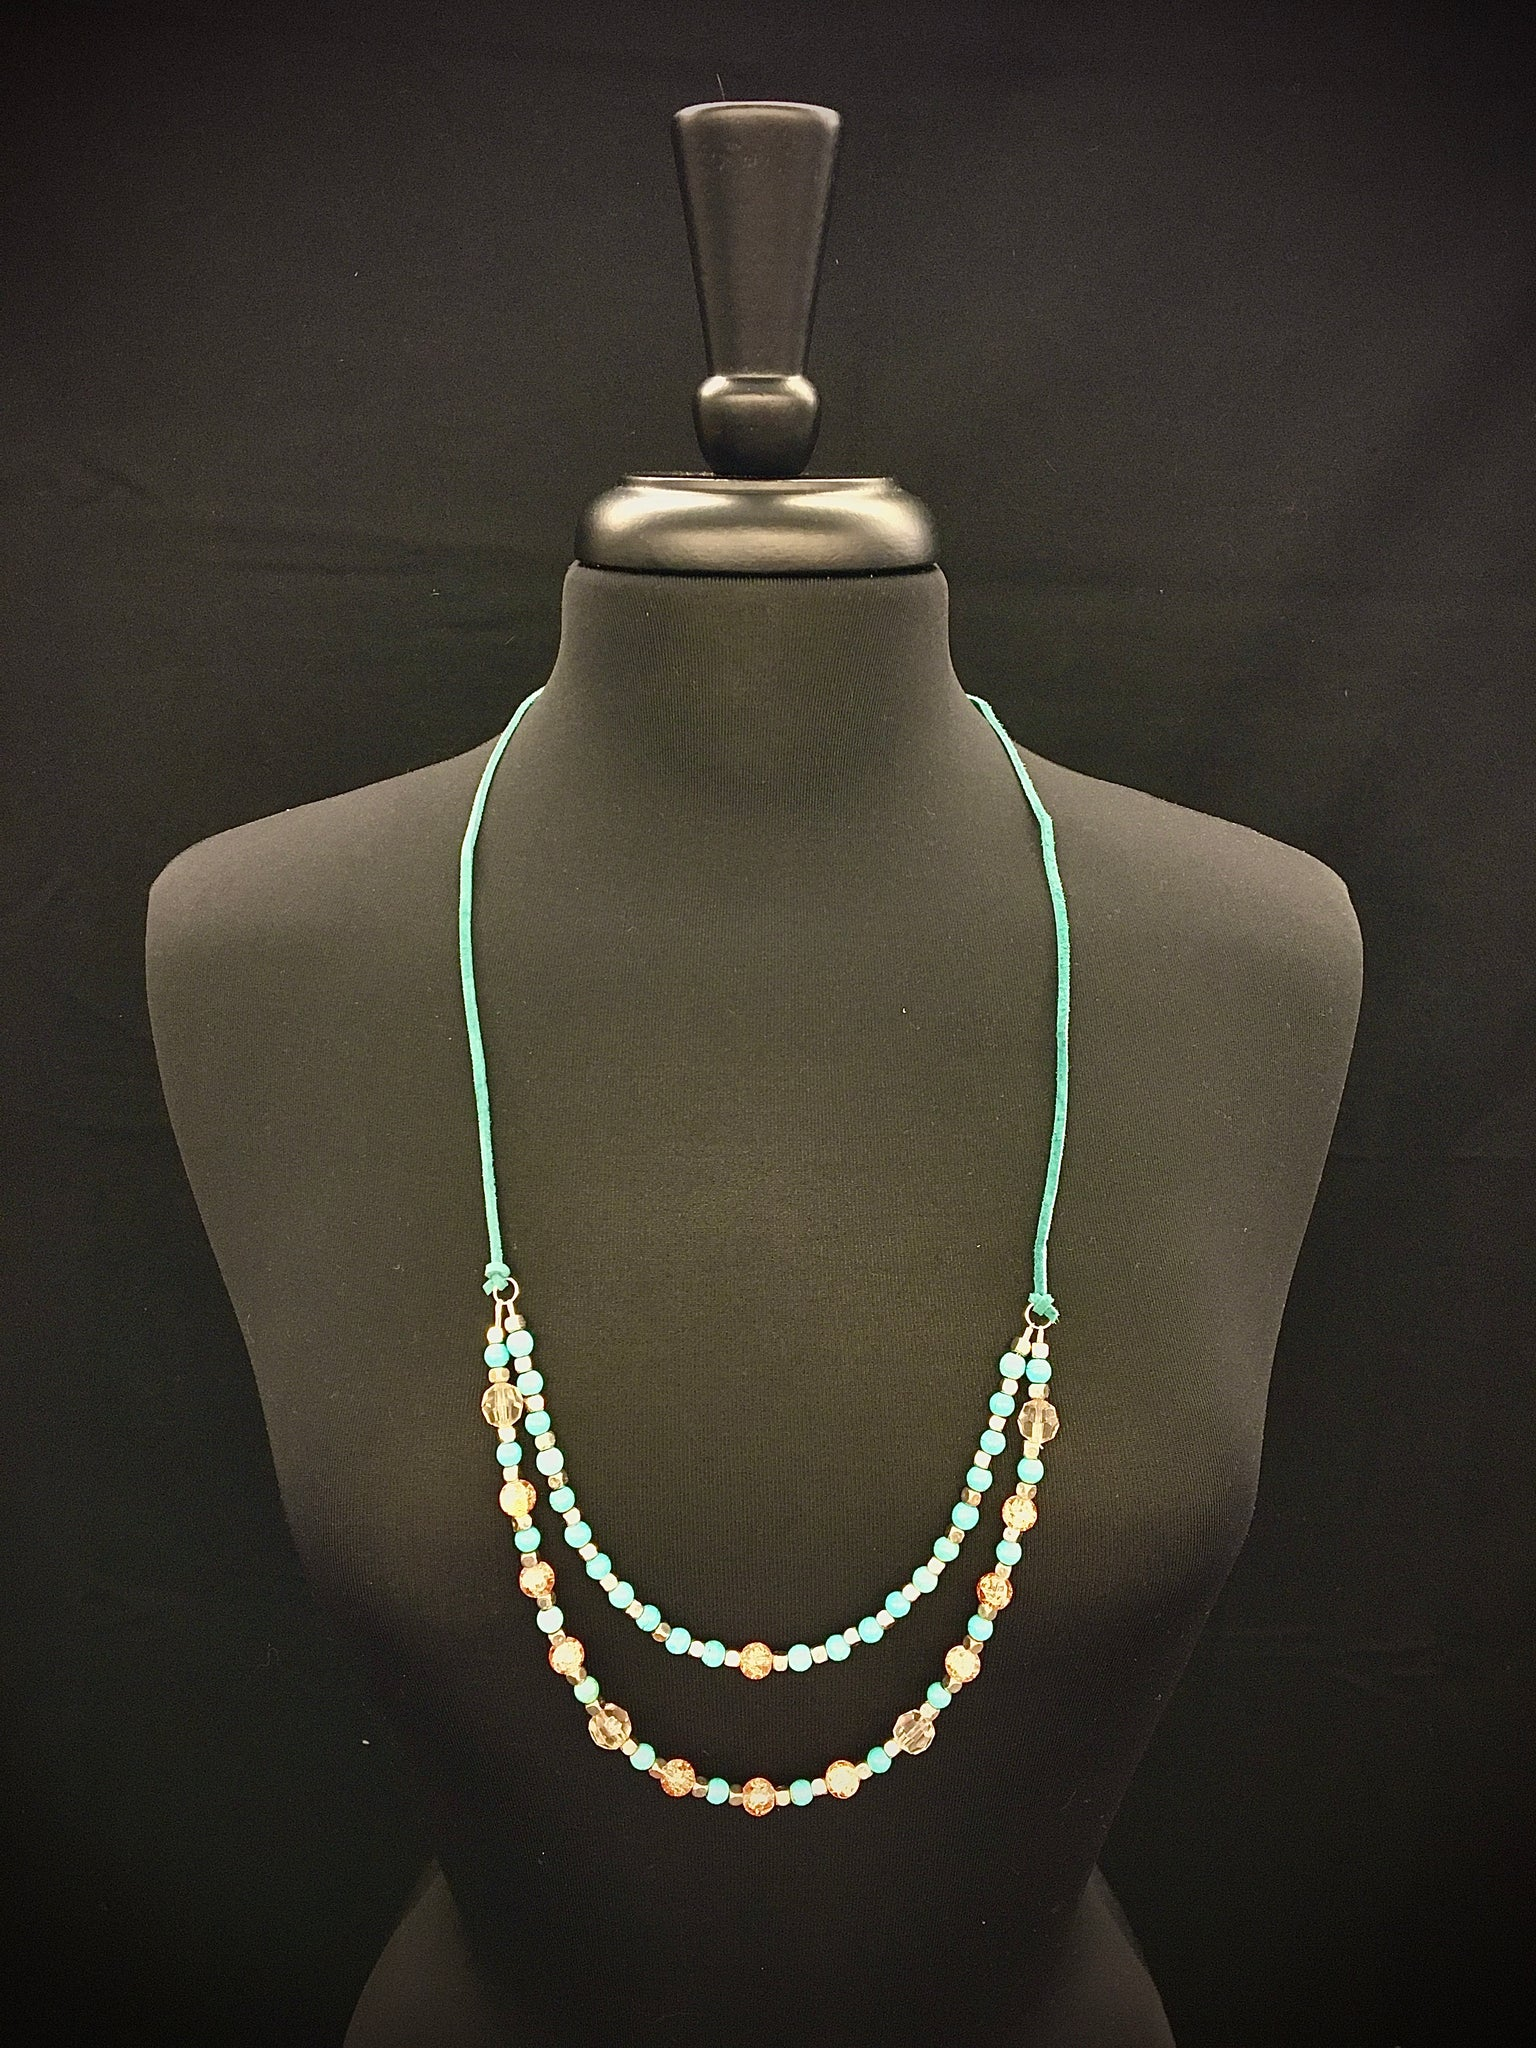 Taos Way Necklace - #1